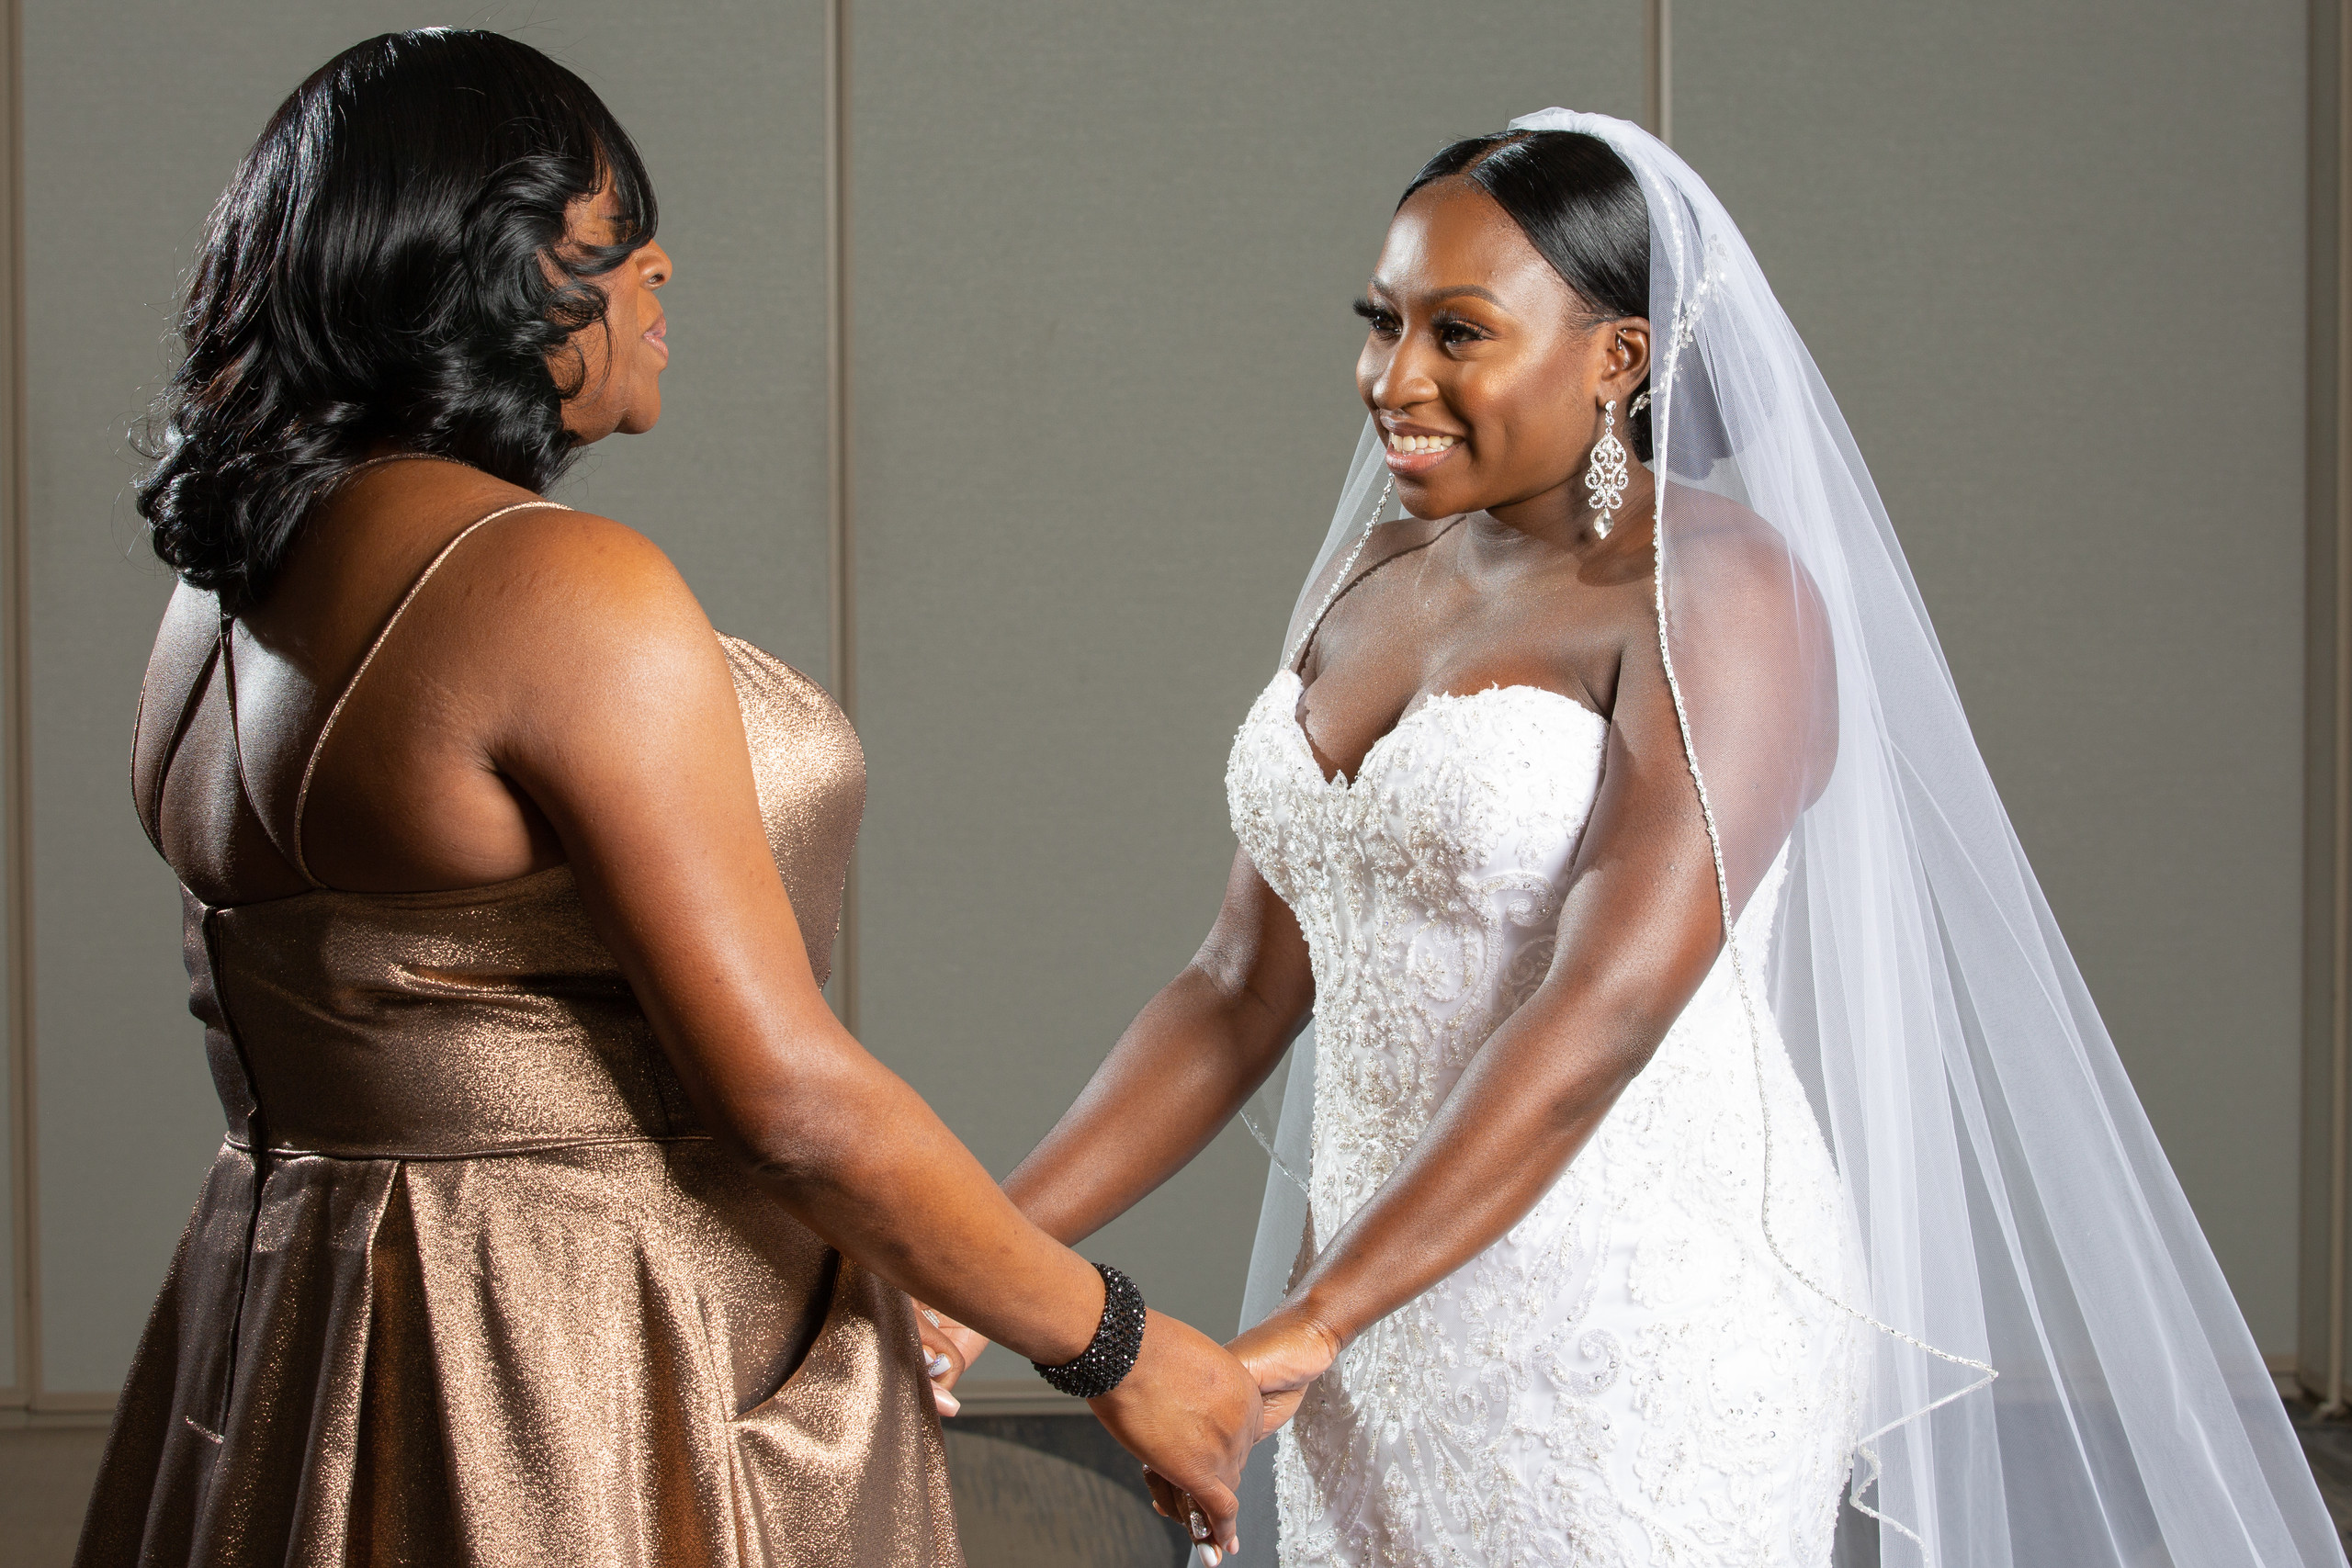 Bride with her mother before the wedding ceremony at the Hilton Main in Norfolk, Virginia.